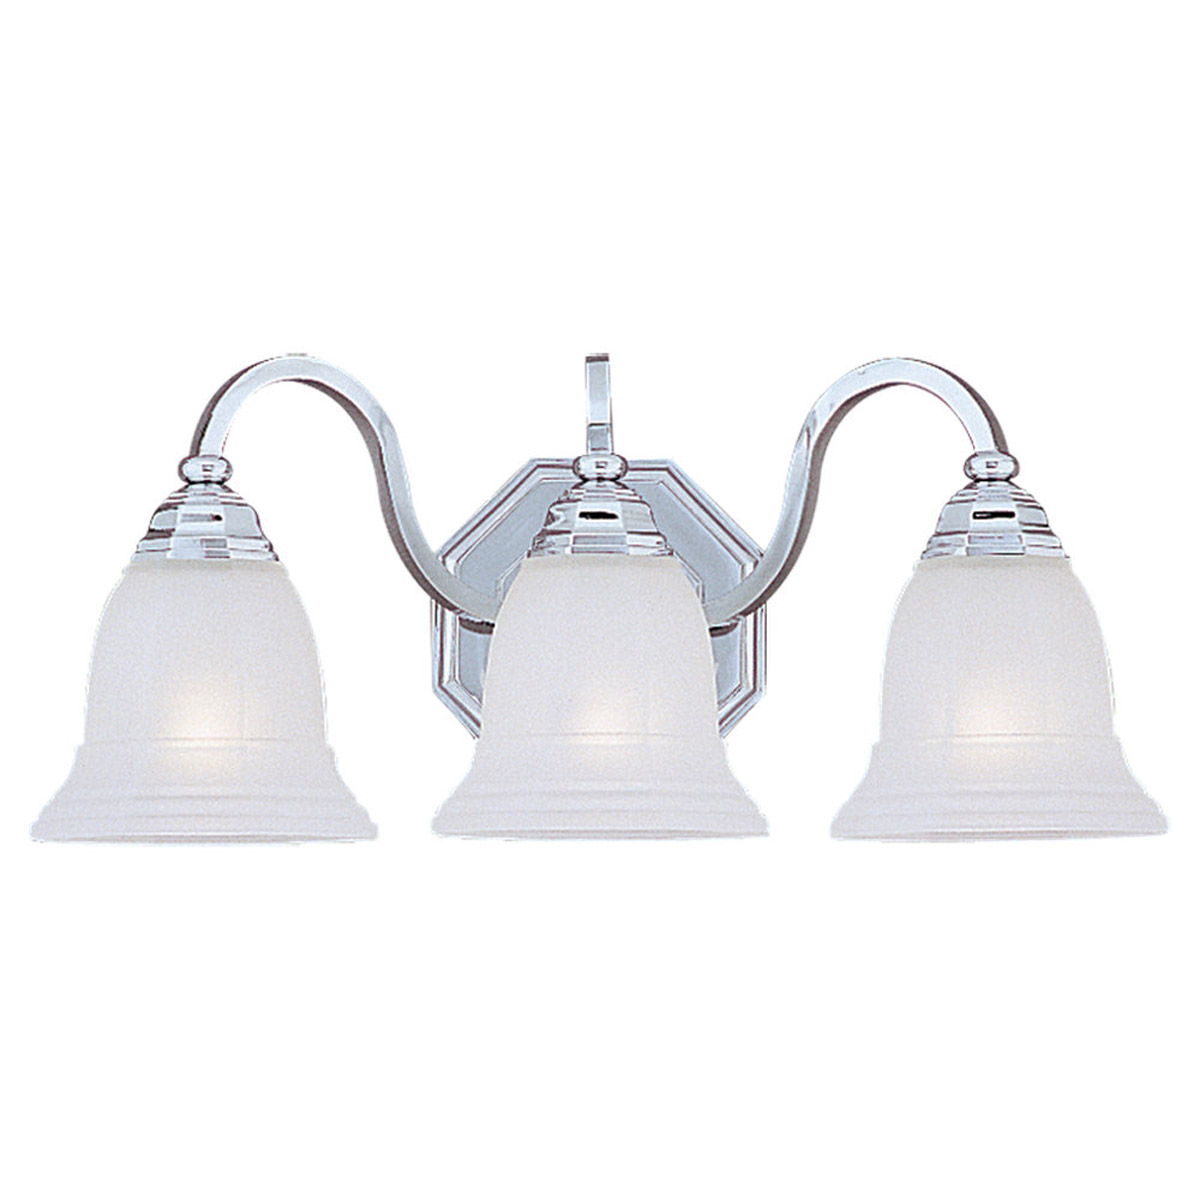 Sea Gull Lighting Blakely 3 Light Bath Vanity in Chrome 4059-05